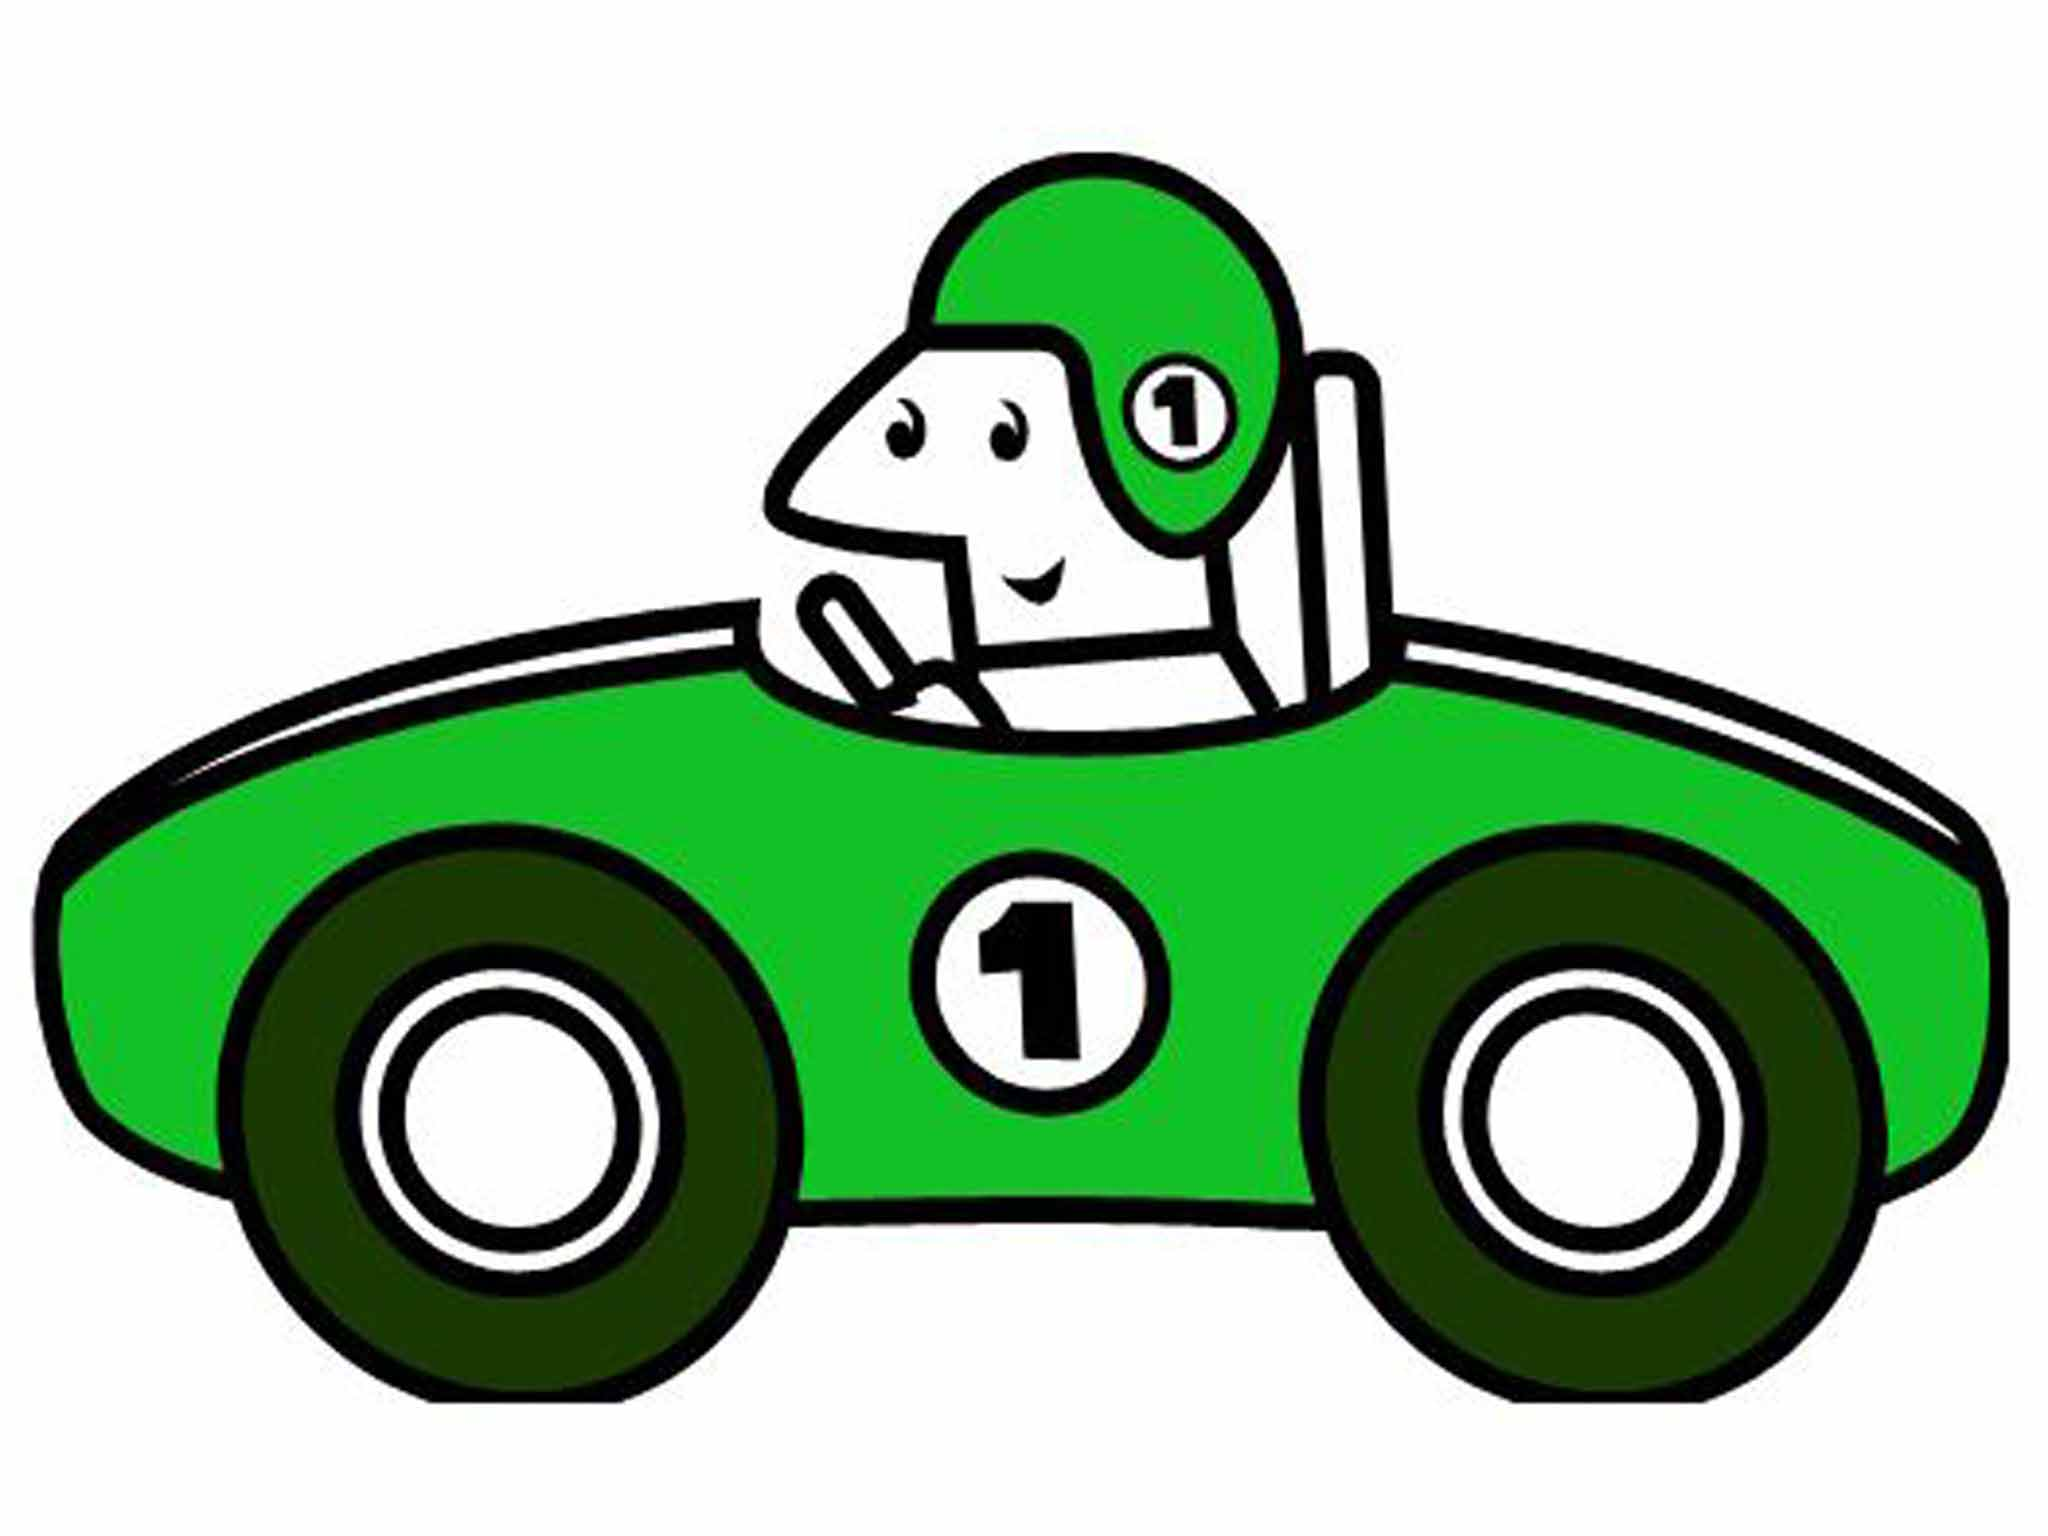 2048x1536 Race Car Crash Clipart Clipartfest